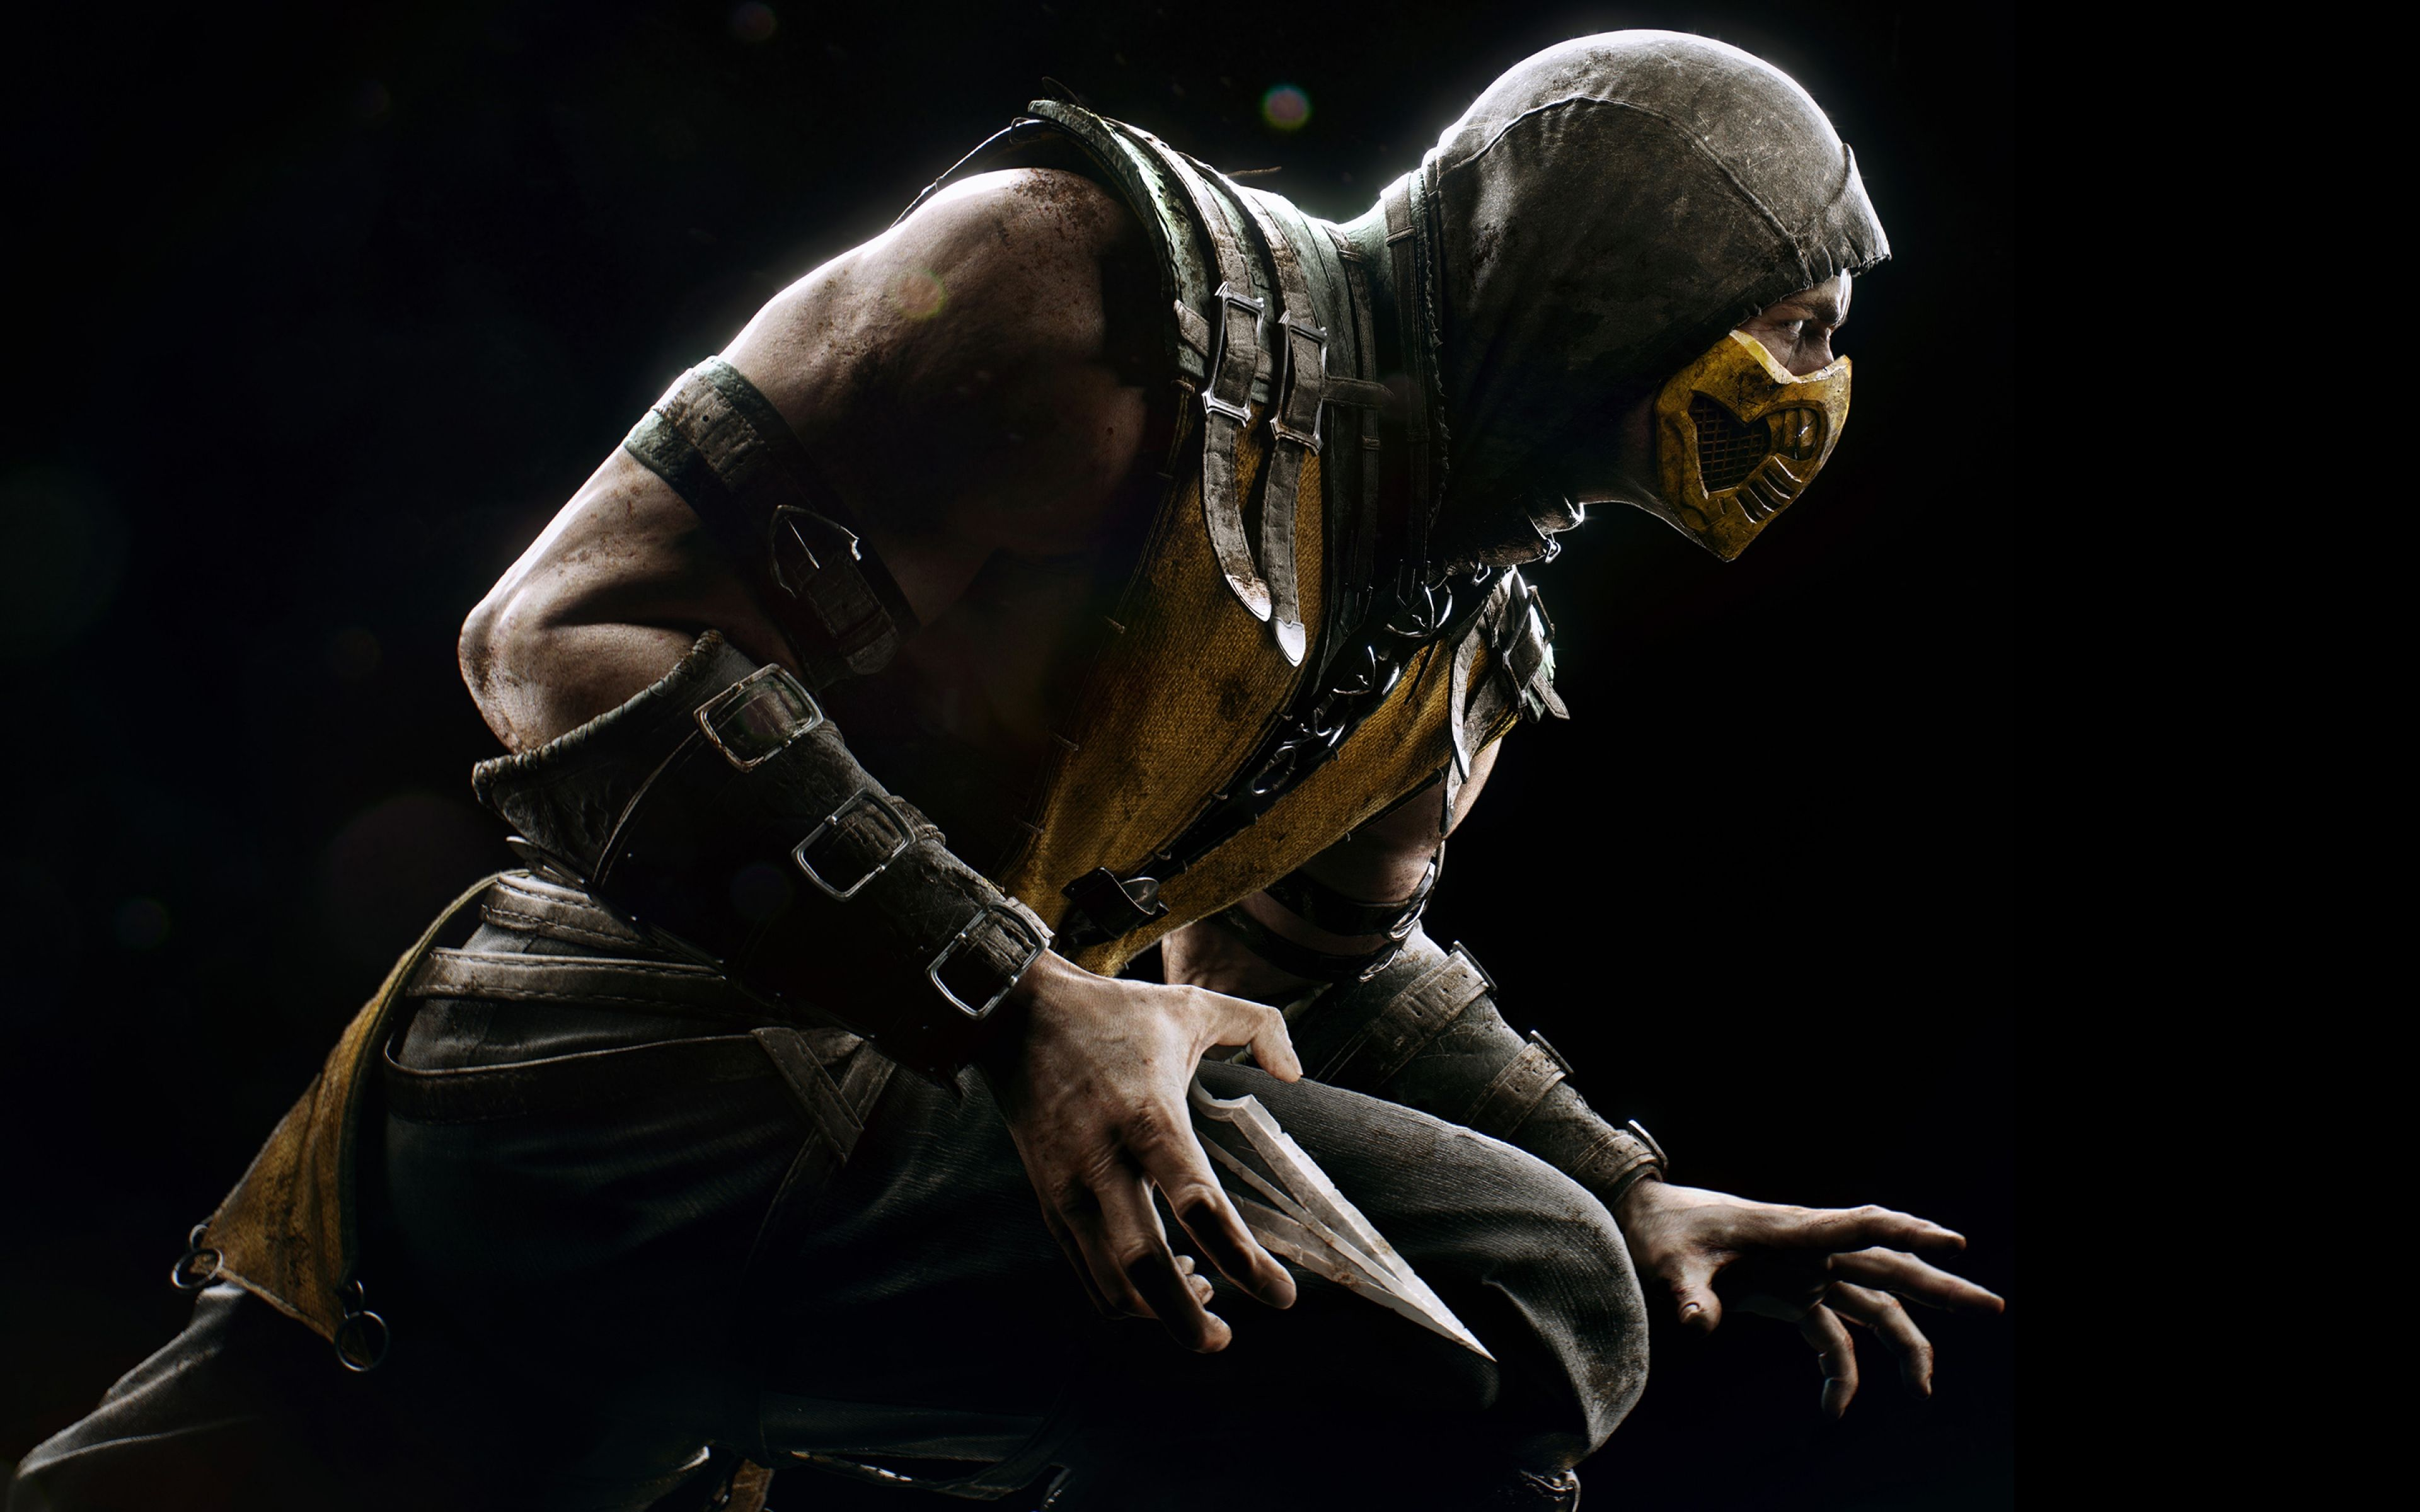 Download Wallpaper 3840x2400 Mortal Kombat X Scorpio Ninja Pose Ultra Hd 4k Hd Background Mor Eğlence